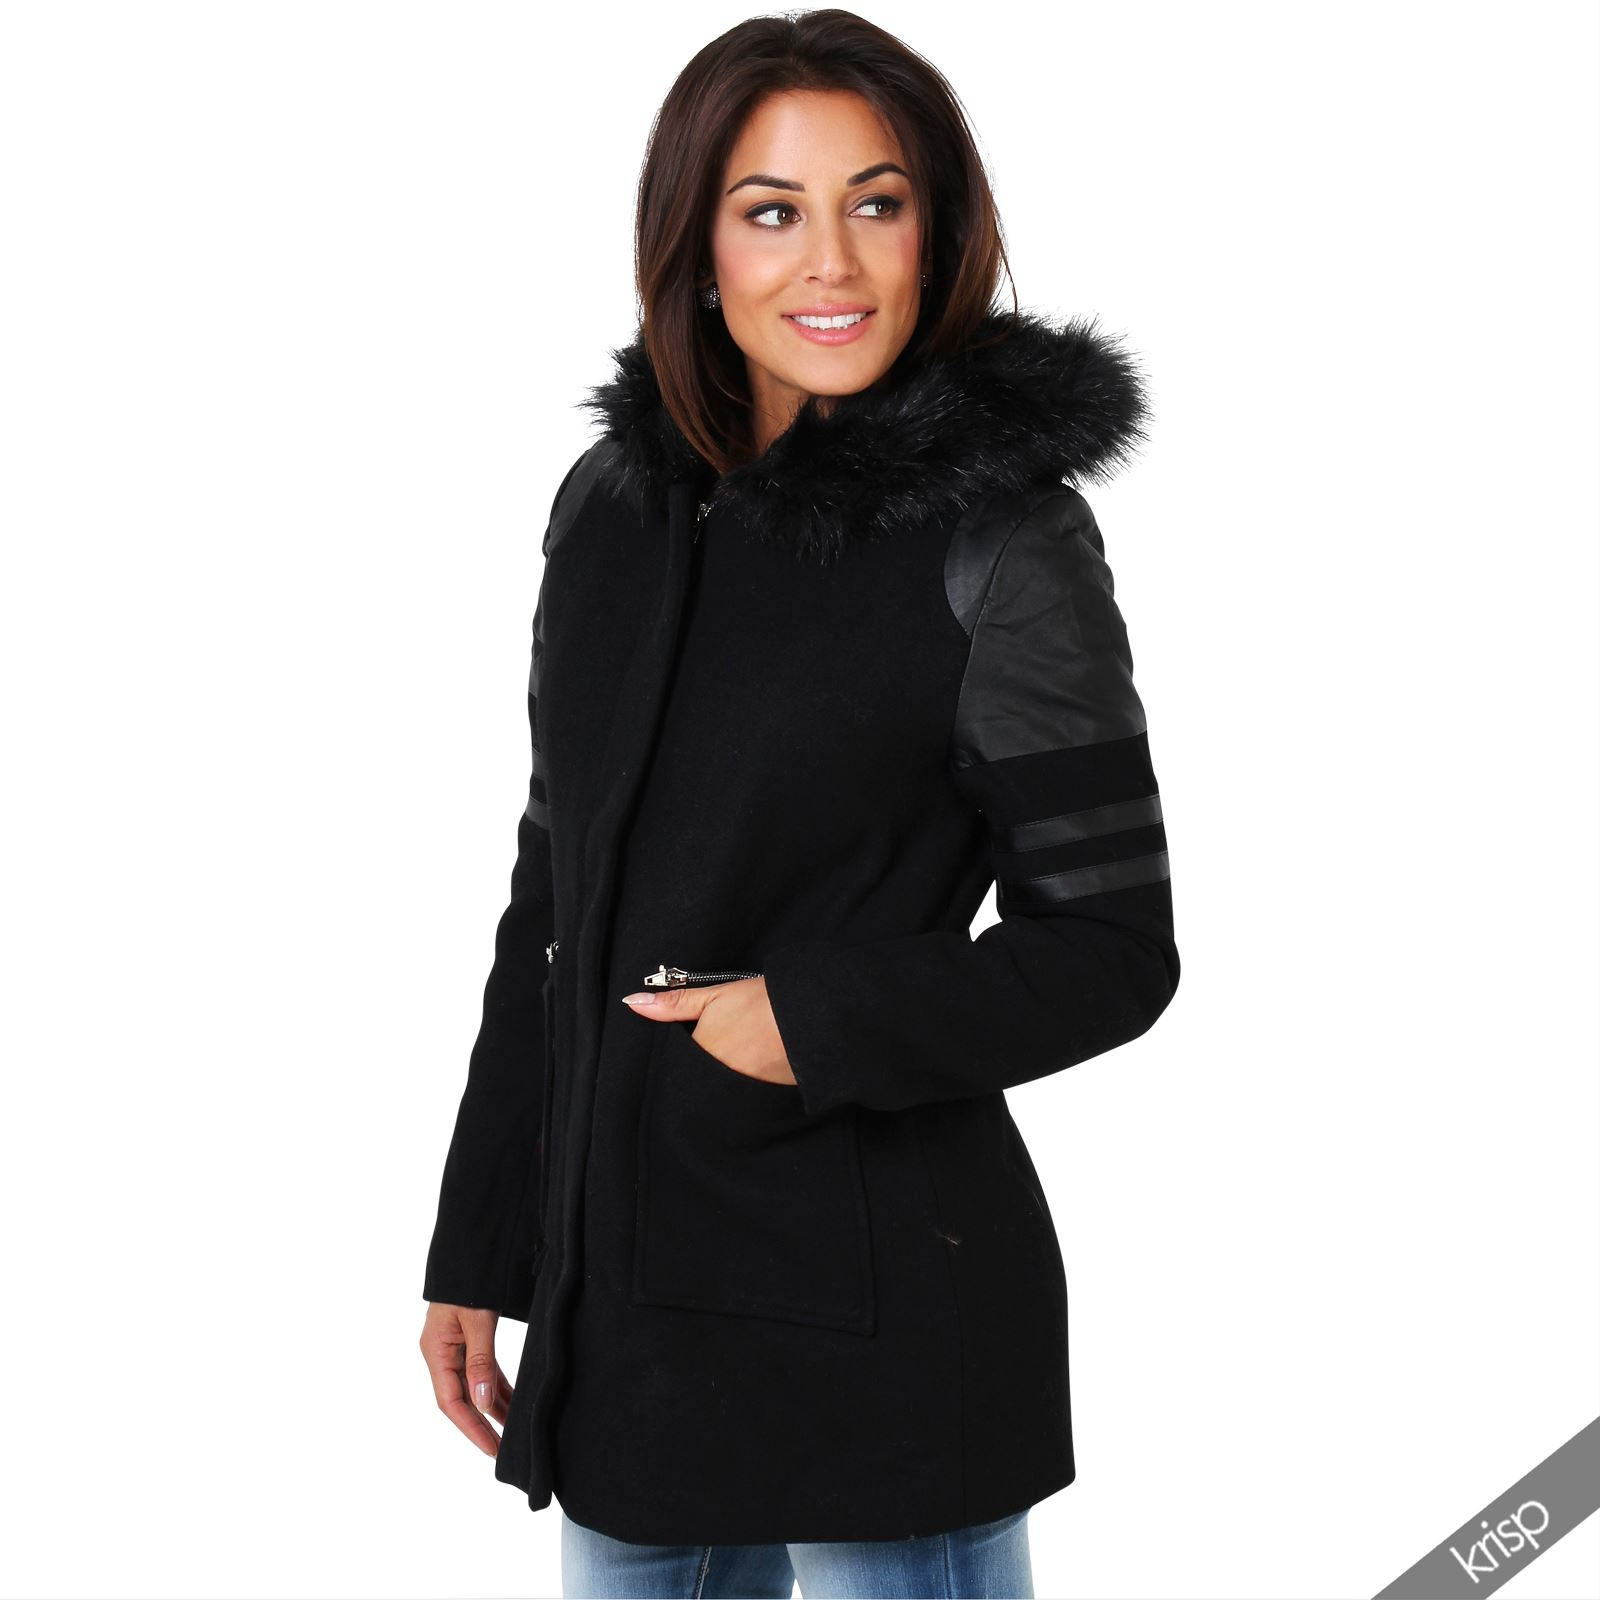 femmes manteau parka laine doubl capuche fourrure empi cement cuir chaud ebay. Black Bedroom Furniture Sets. Home Design Ideas